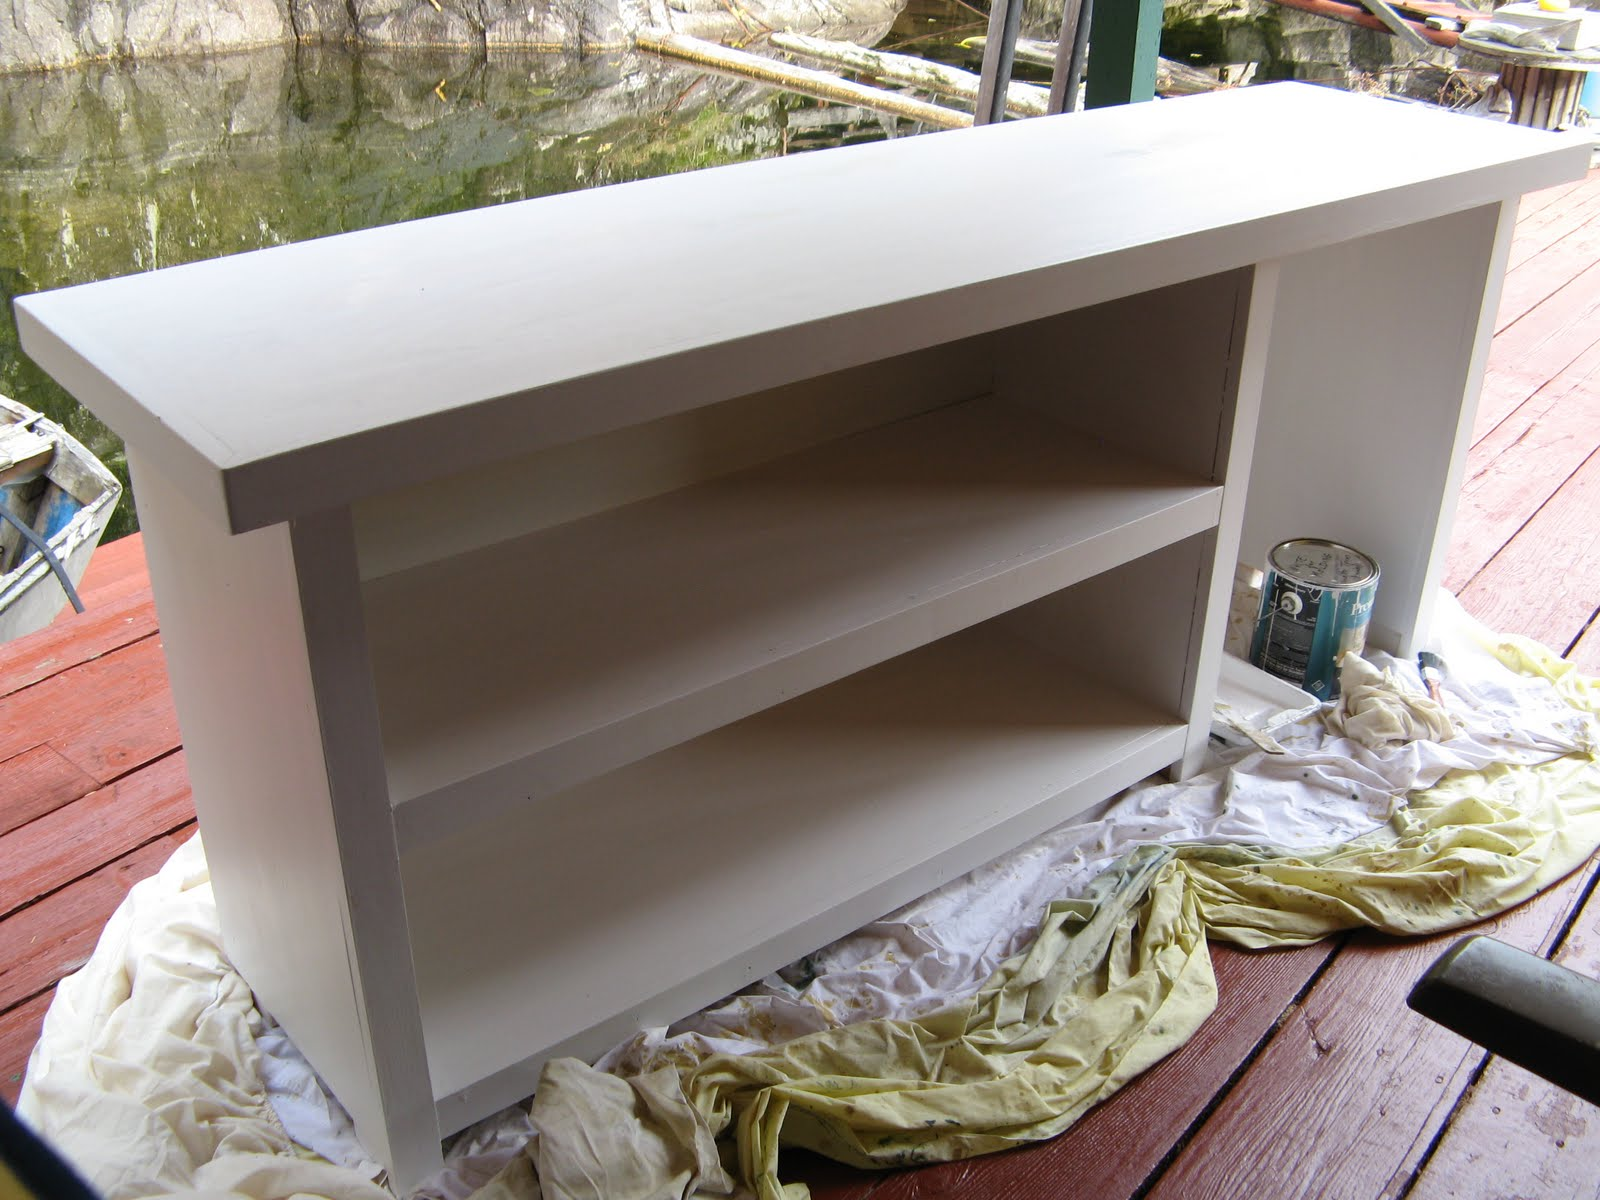 Kitchen Magician Kitchens On Clearance Powell River Books Blog John Is Like A At Everything He Does I Let Him Know What Need And Makes It Happen Magic Our Storage Counter Shelf Are Two